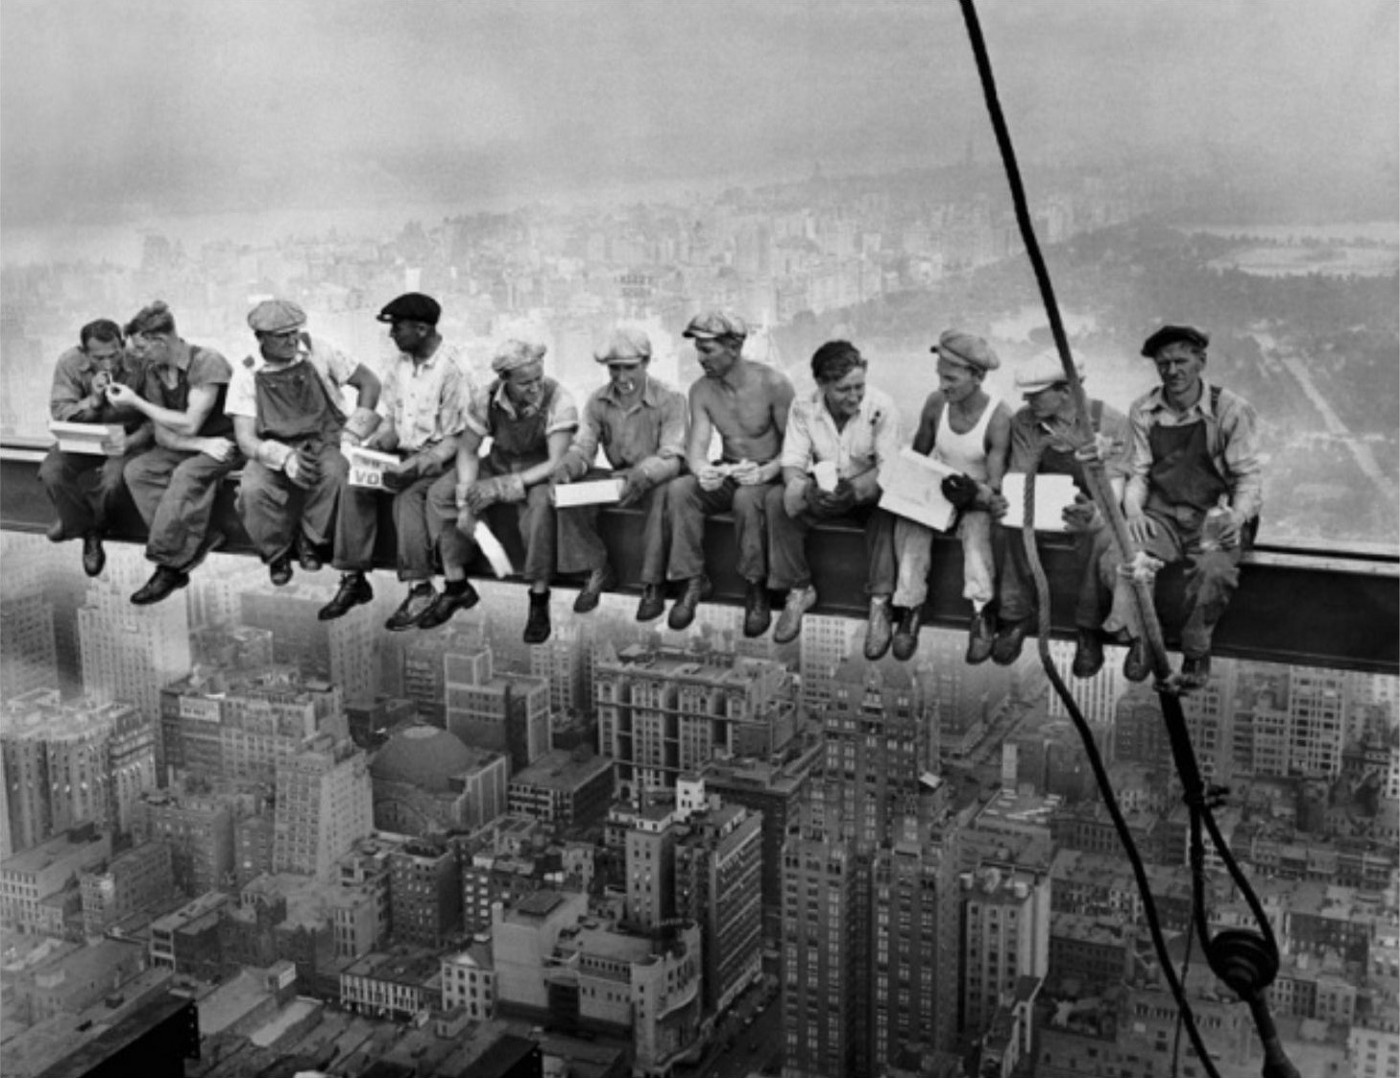 Old photo of immigrants sitting and eating lunch high up on a construction beam above New York City